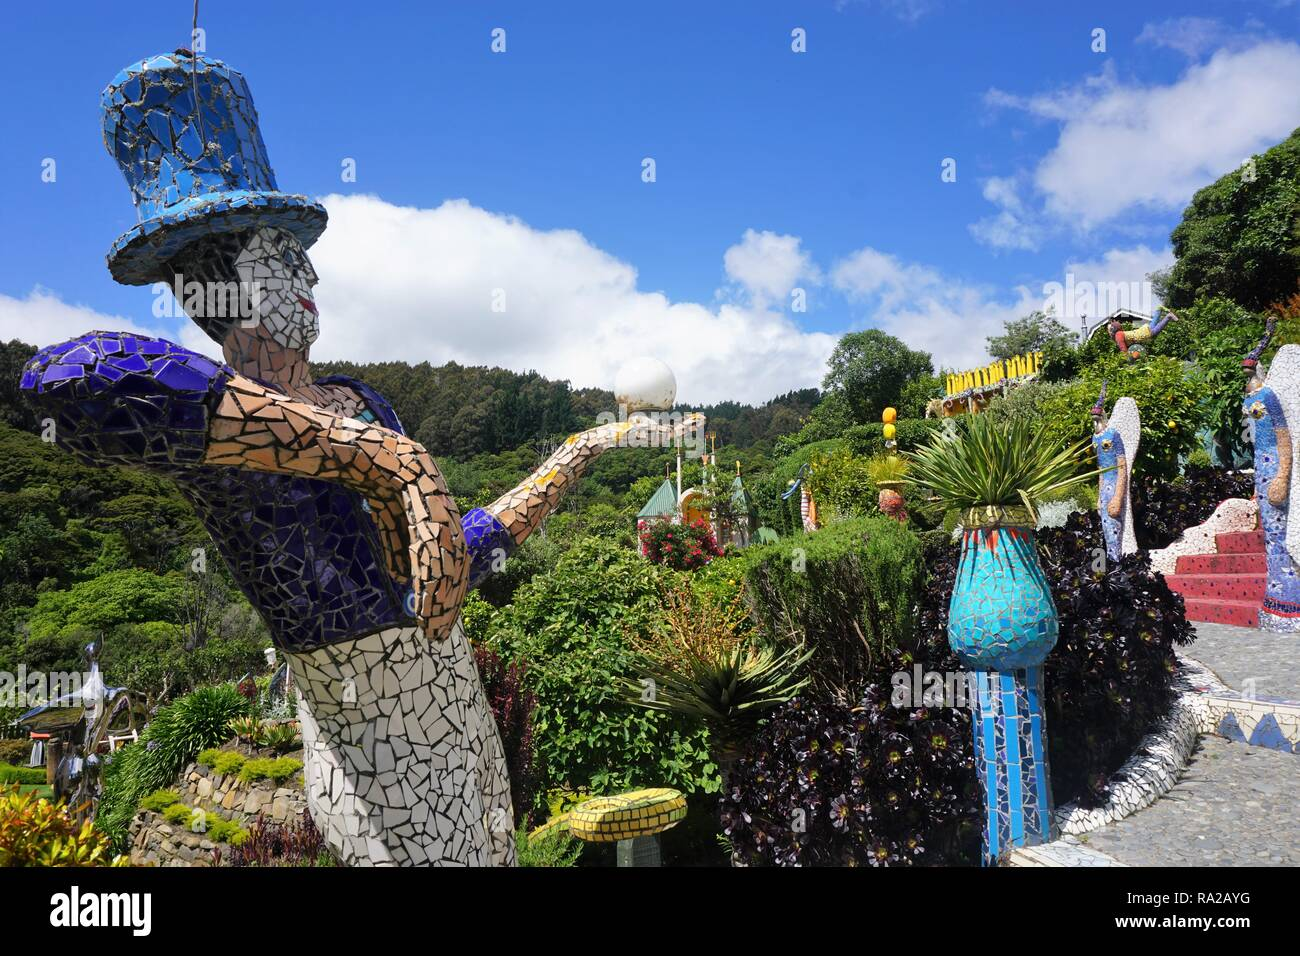 The Enchanting Fairy Tale Garden of the Giant's House in Akaroa, New Zealand - Stock Image